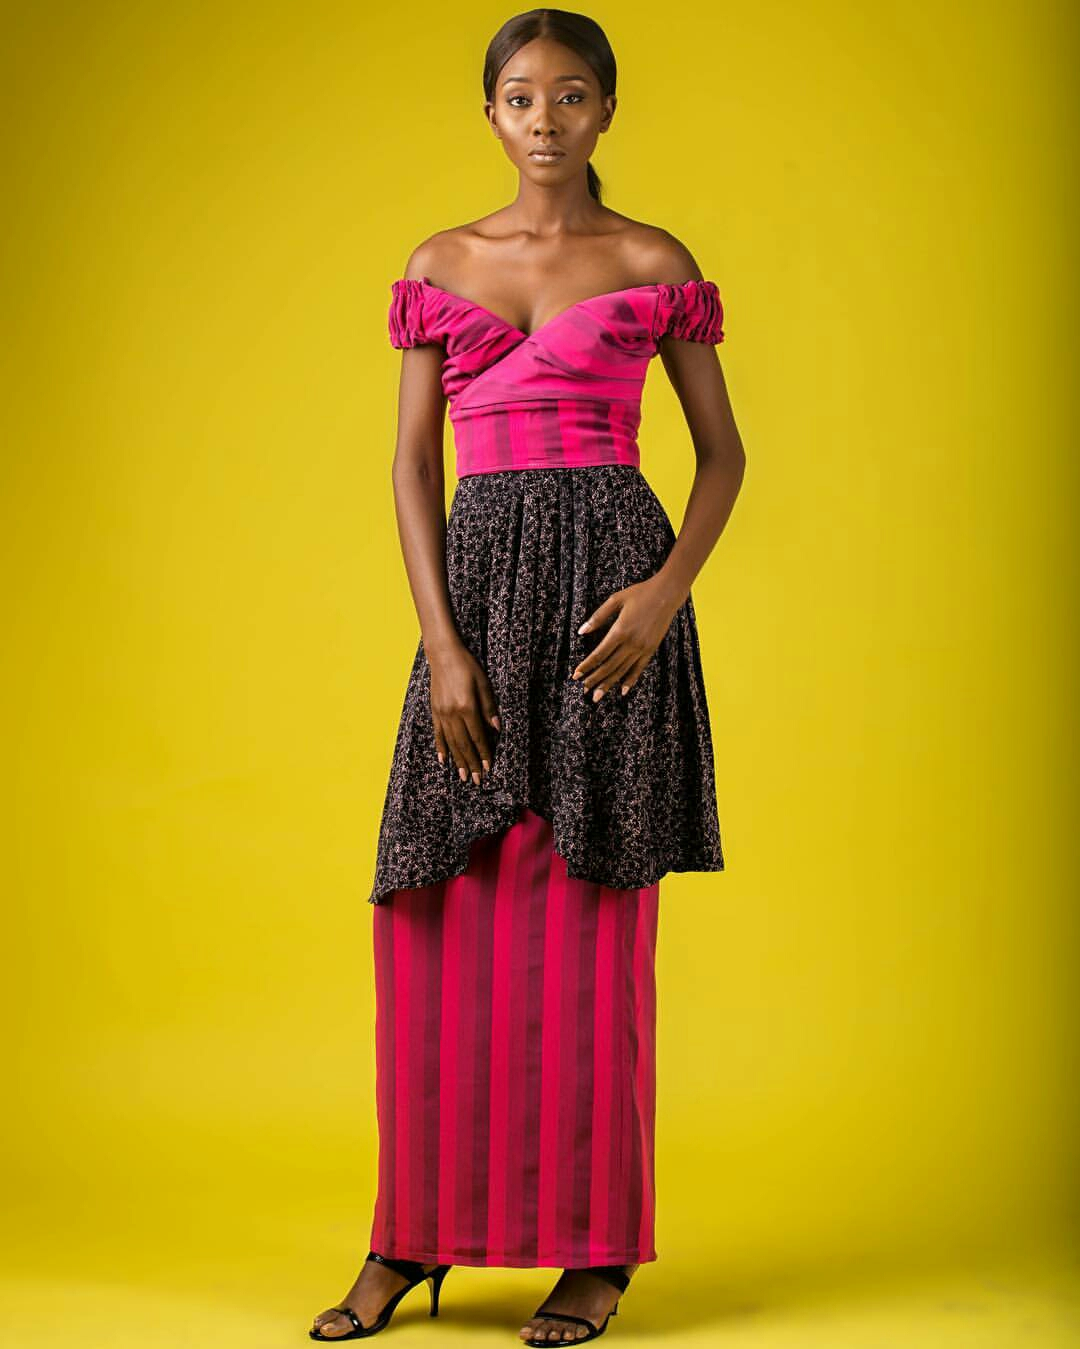 10 Best Nigerian Fashion Designers - m 55